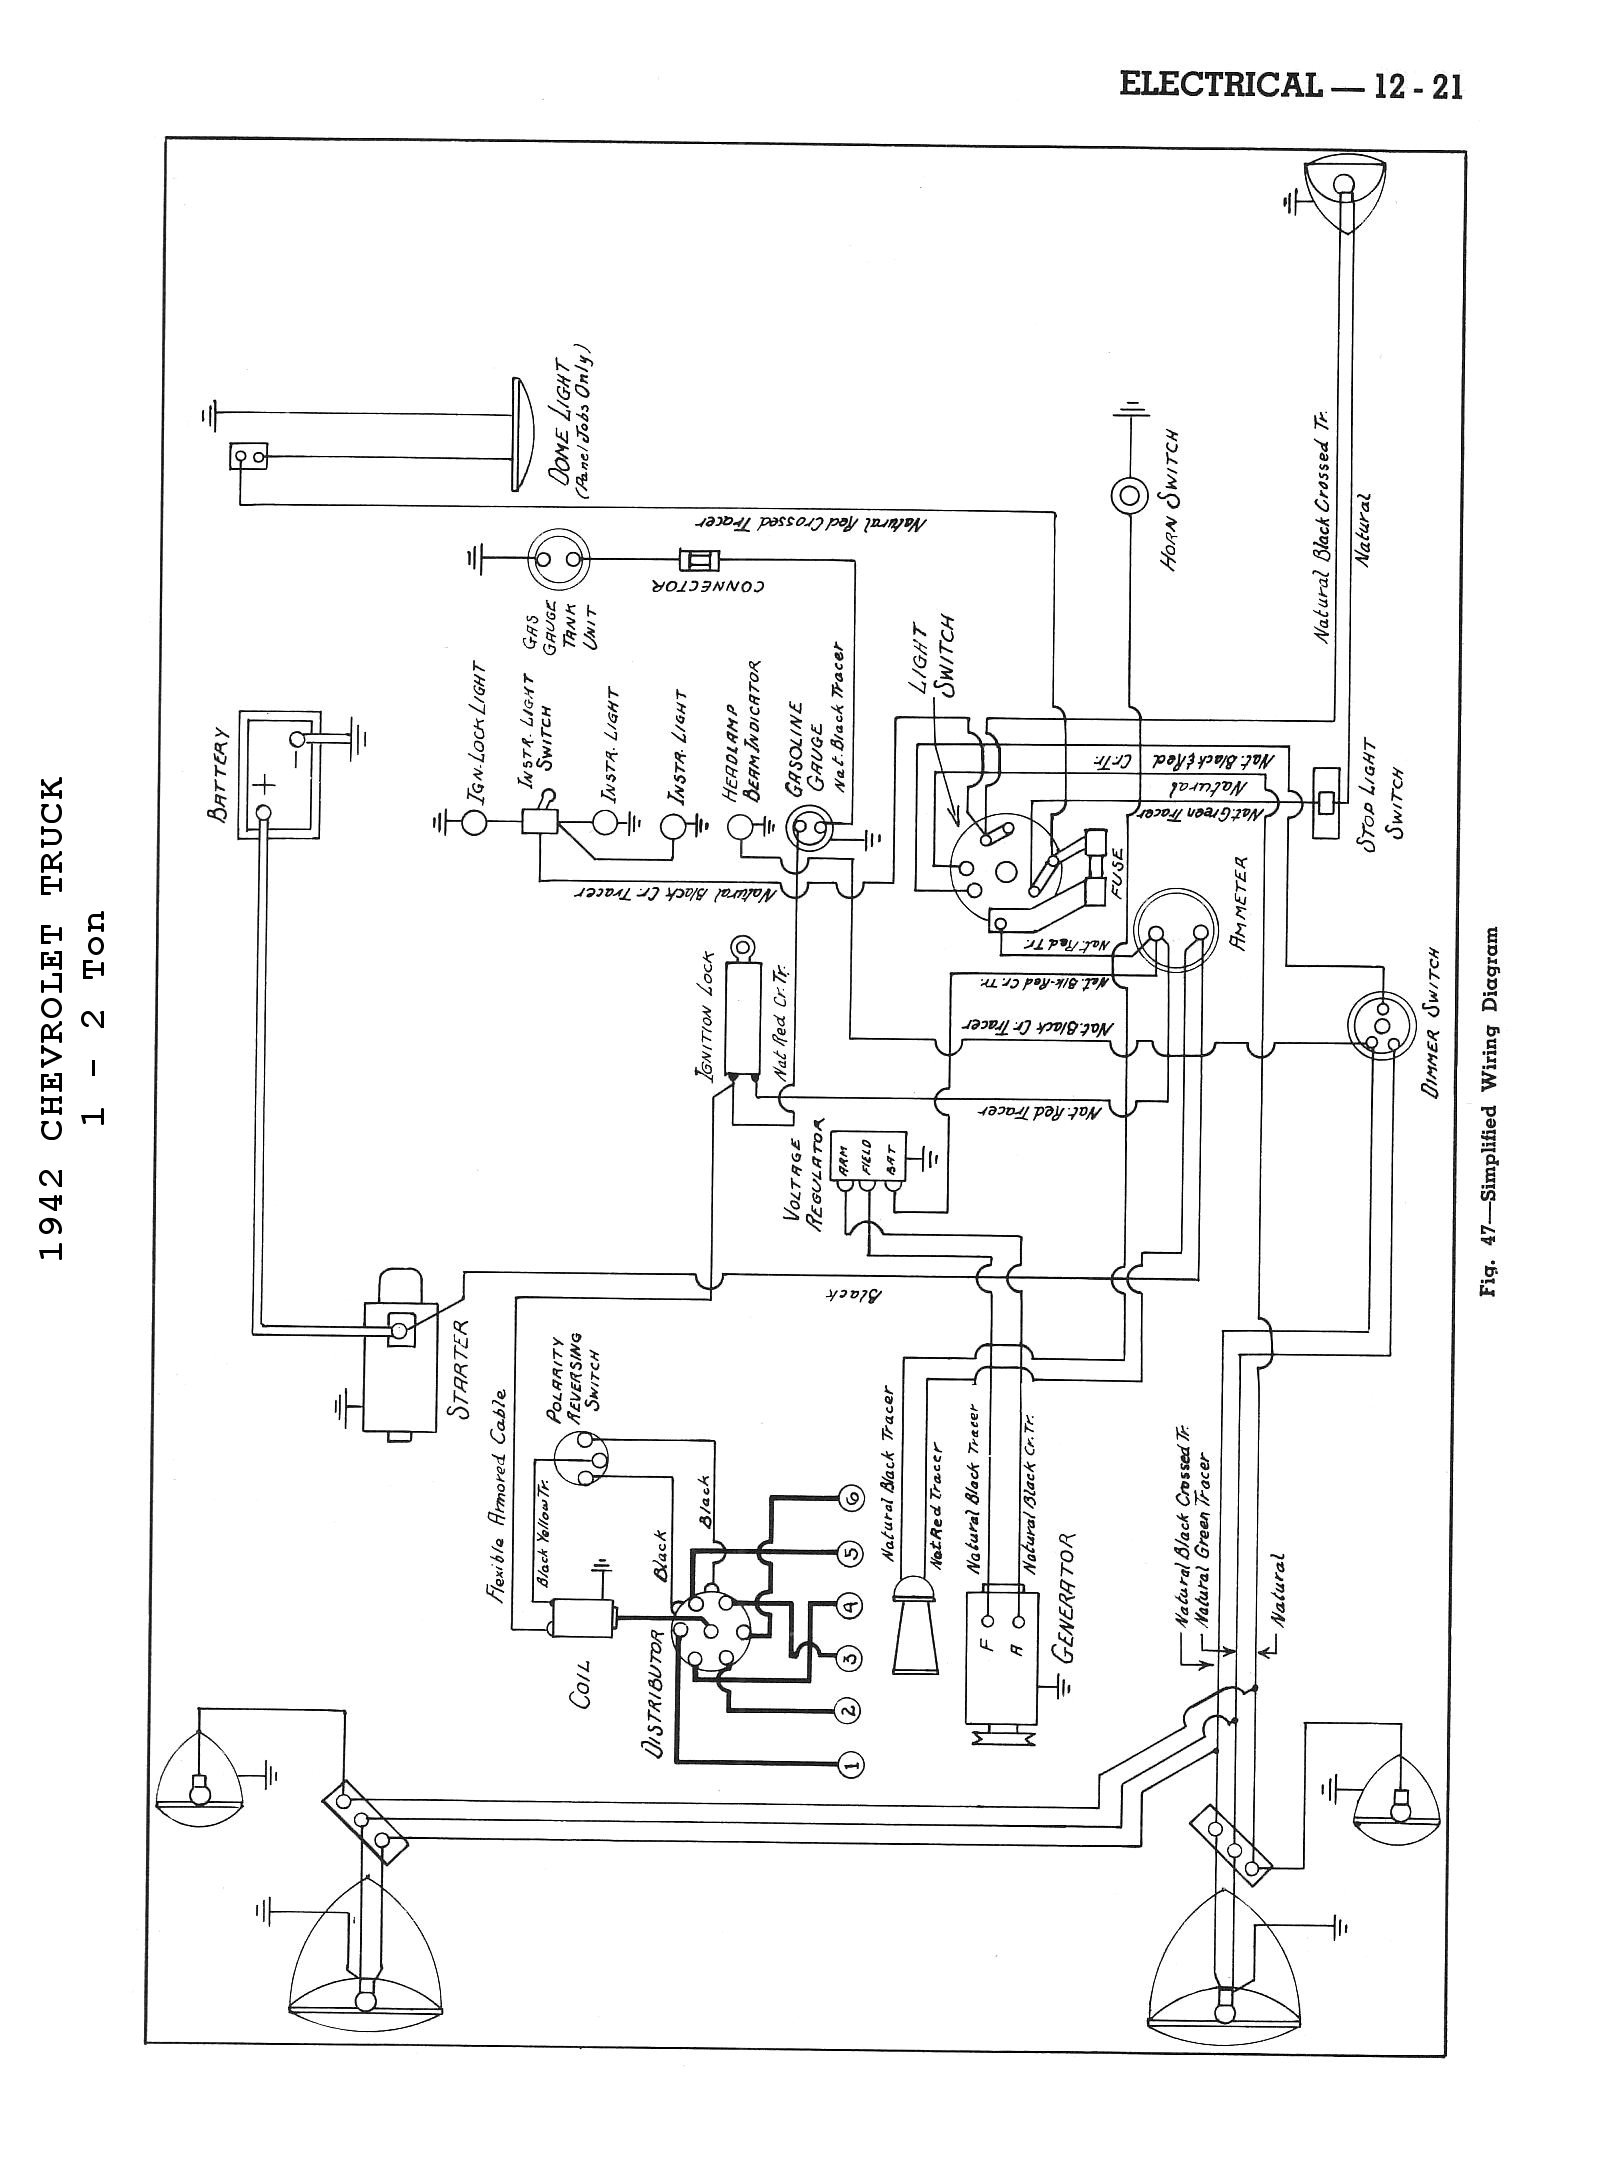 42cm4x2t1221 chevy wiring diagrams cm wiring diagrams at alyssarenee.co